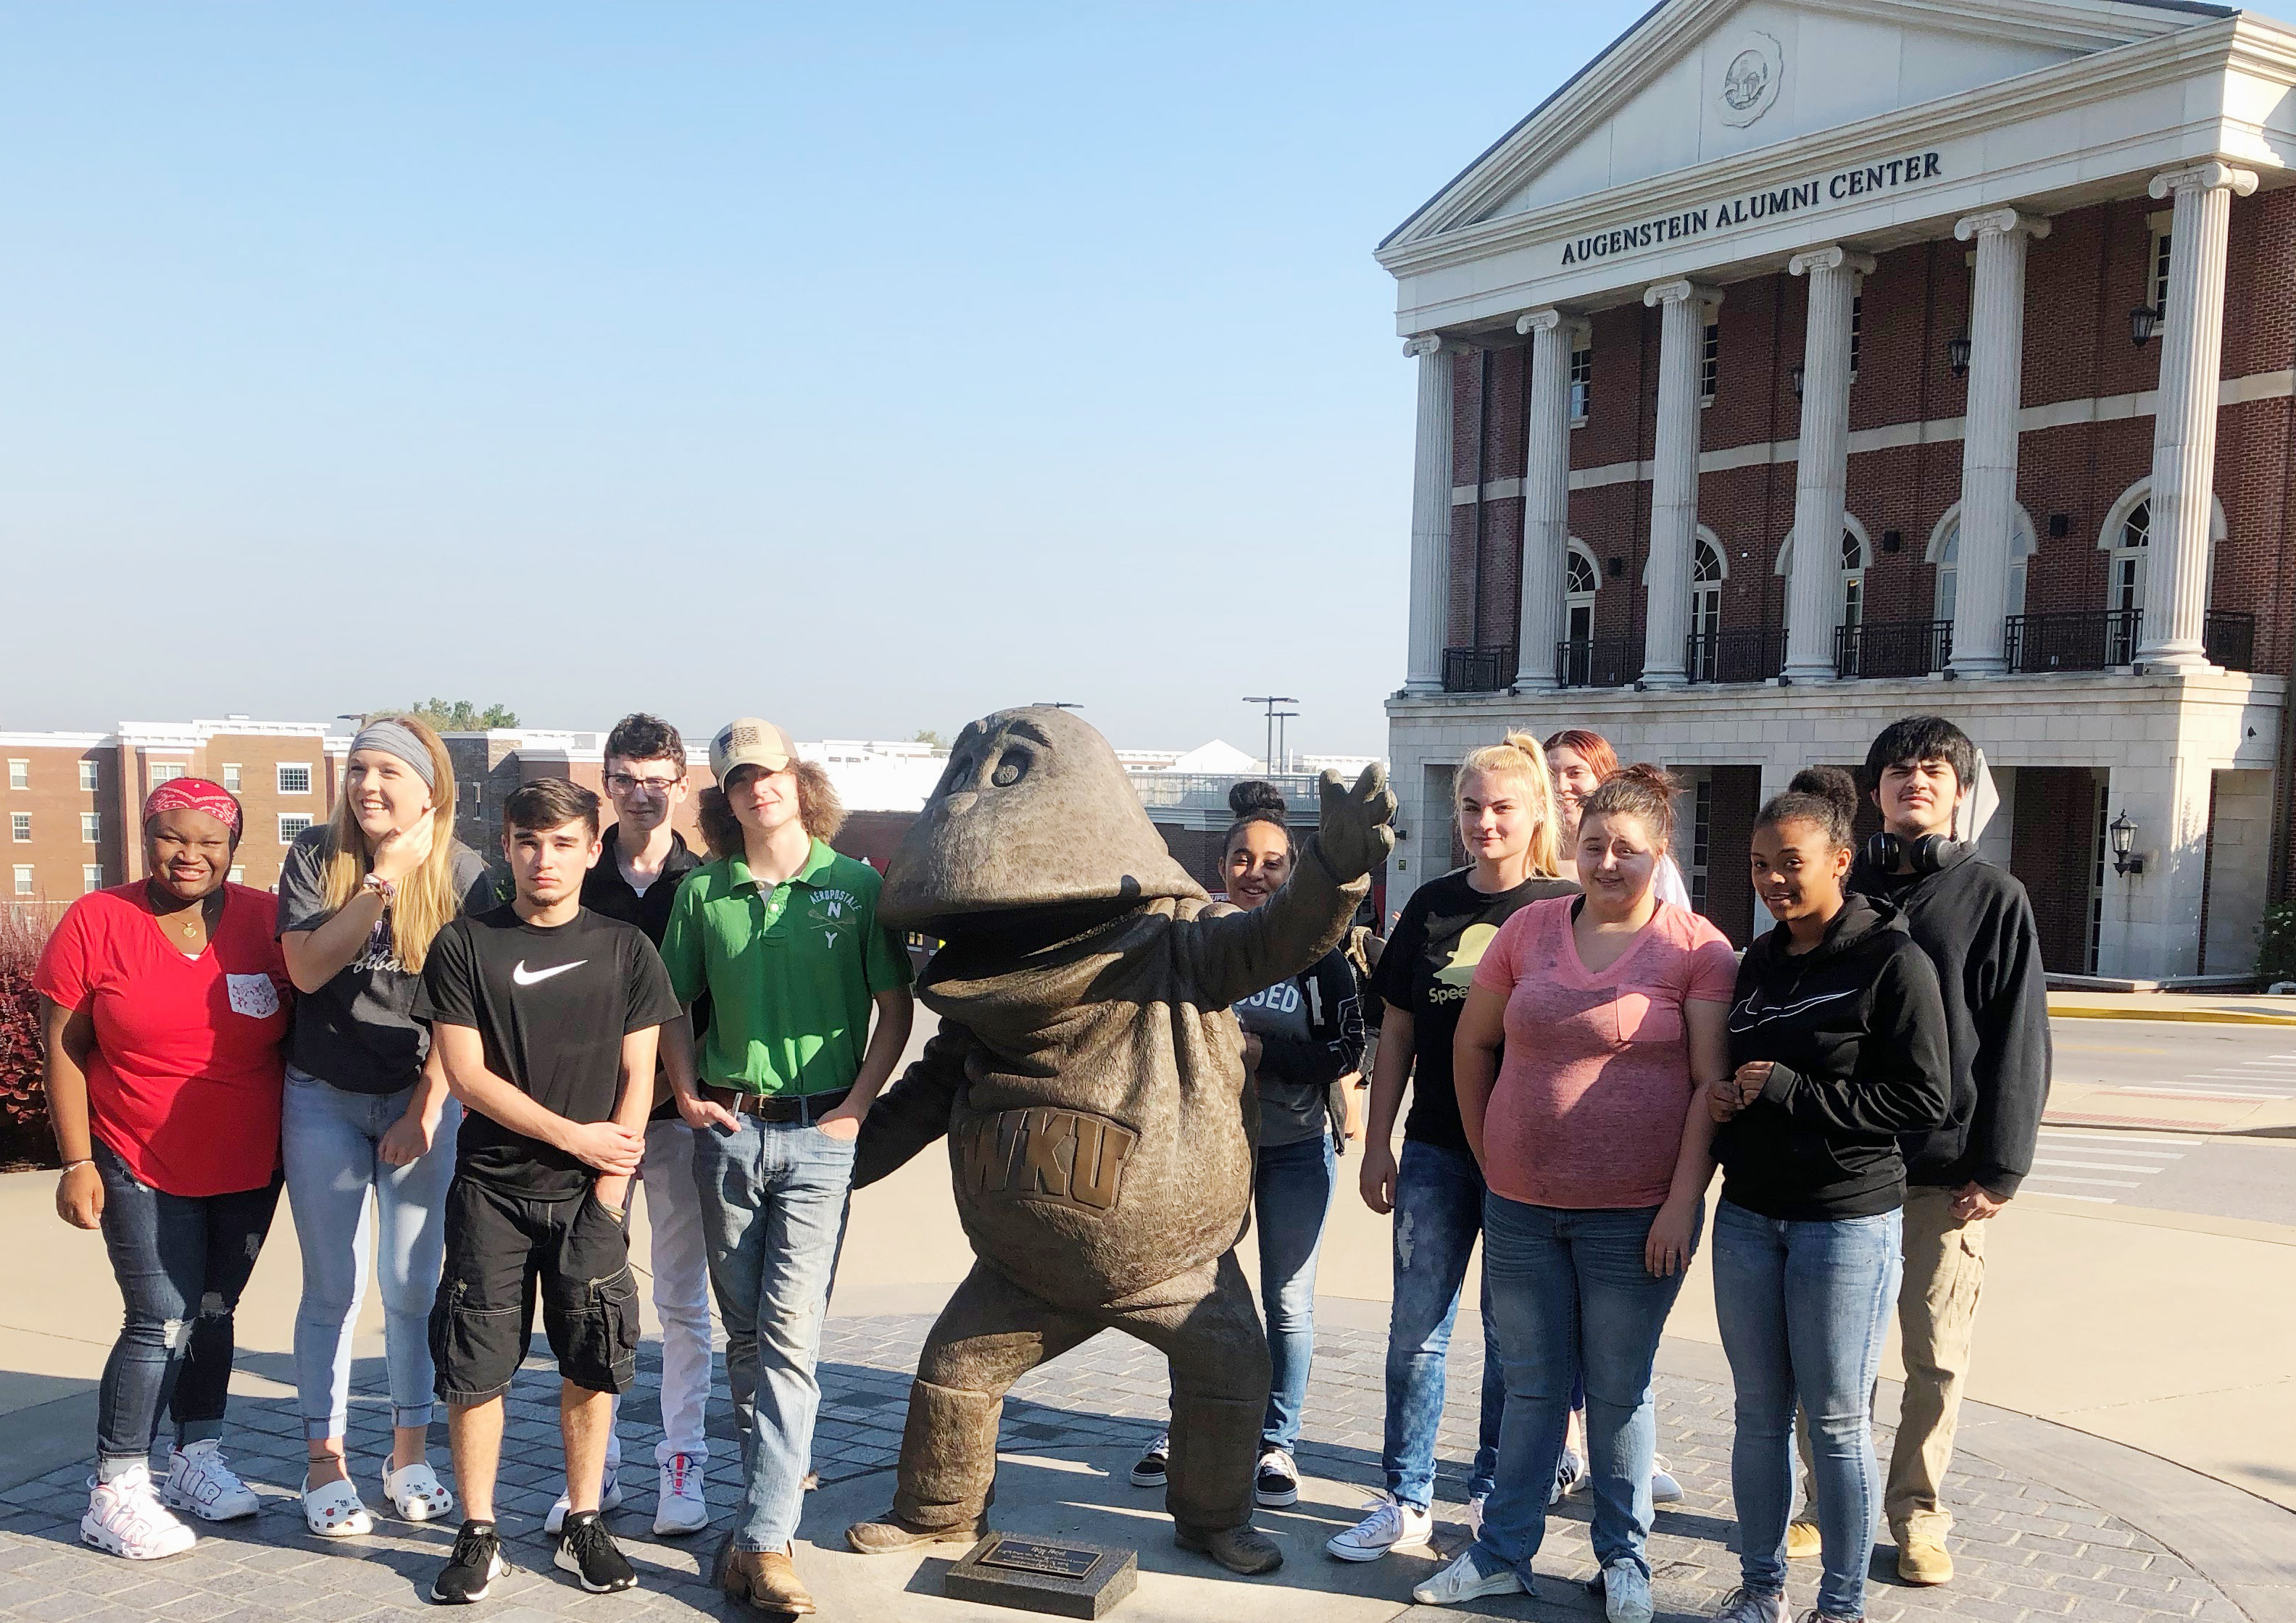 CHS students recently took a tour of the Western Kentucky University campus, and met mascot Big Red. From left are junior Ashalique Adams, sophomore Catlyn Clausen, senior Skyler Burchett, sophomore Jonathan Sparks, senior Merick Turner, junior Jasmine Coro, sophomore Samantha Underwood, junior Danielle Shimek, senior Amanda Dotson, junior Alexis Lane and senior Seth Tindal.